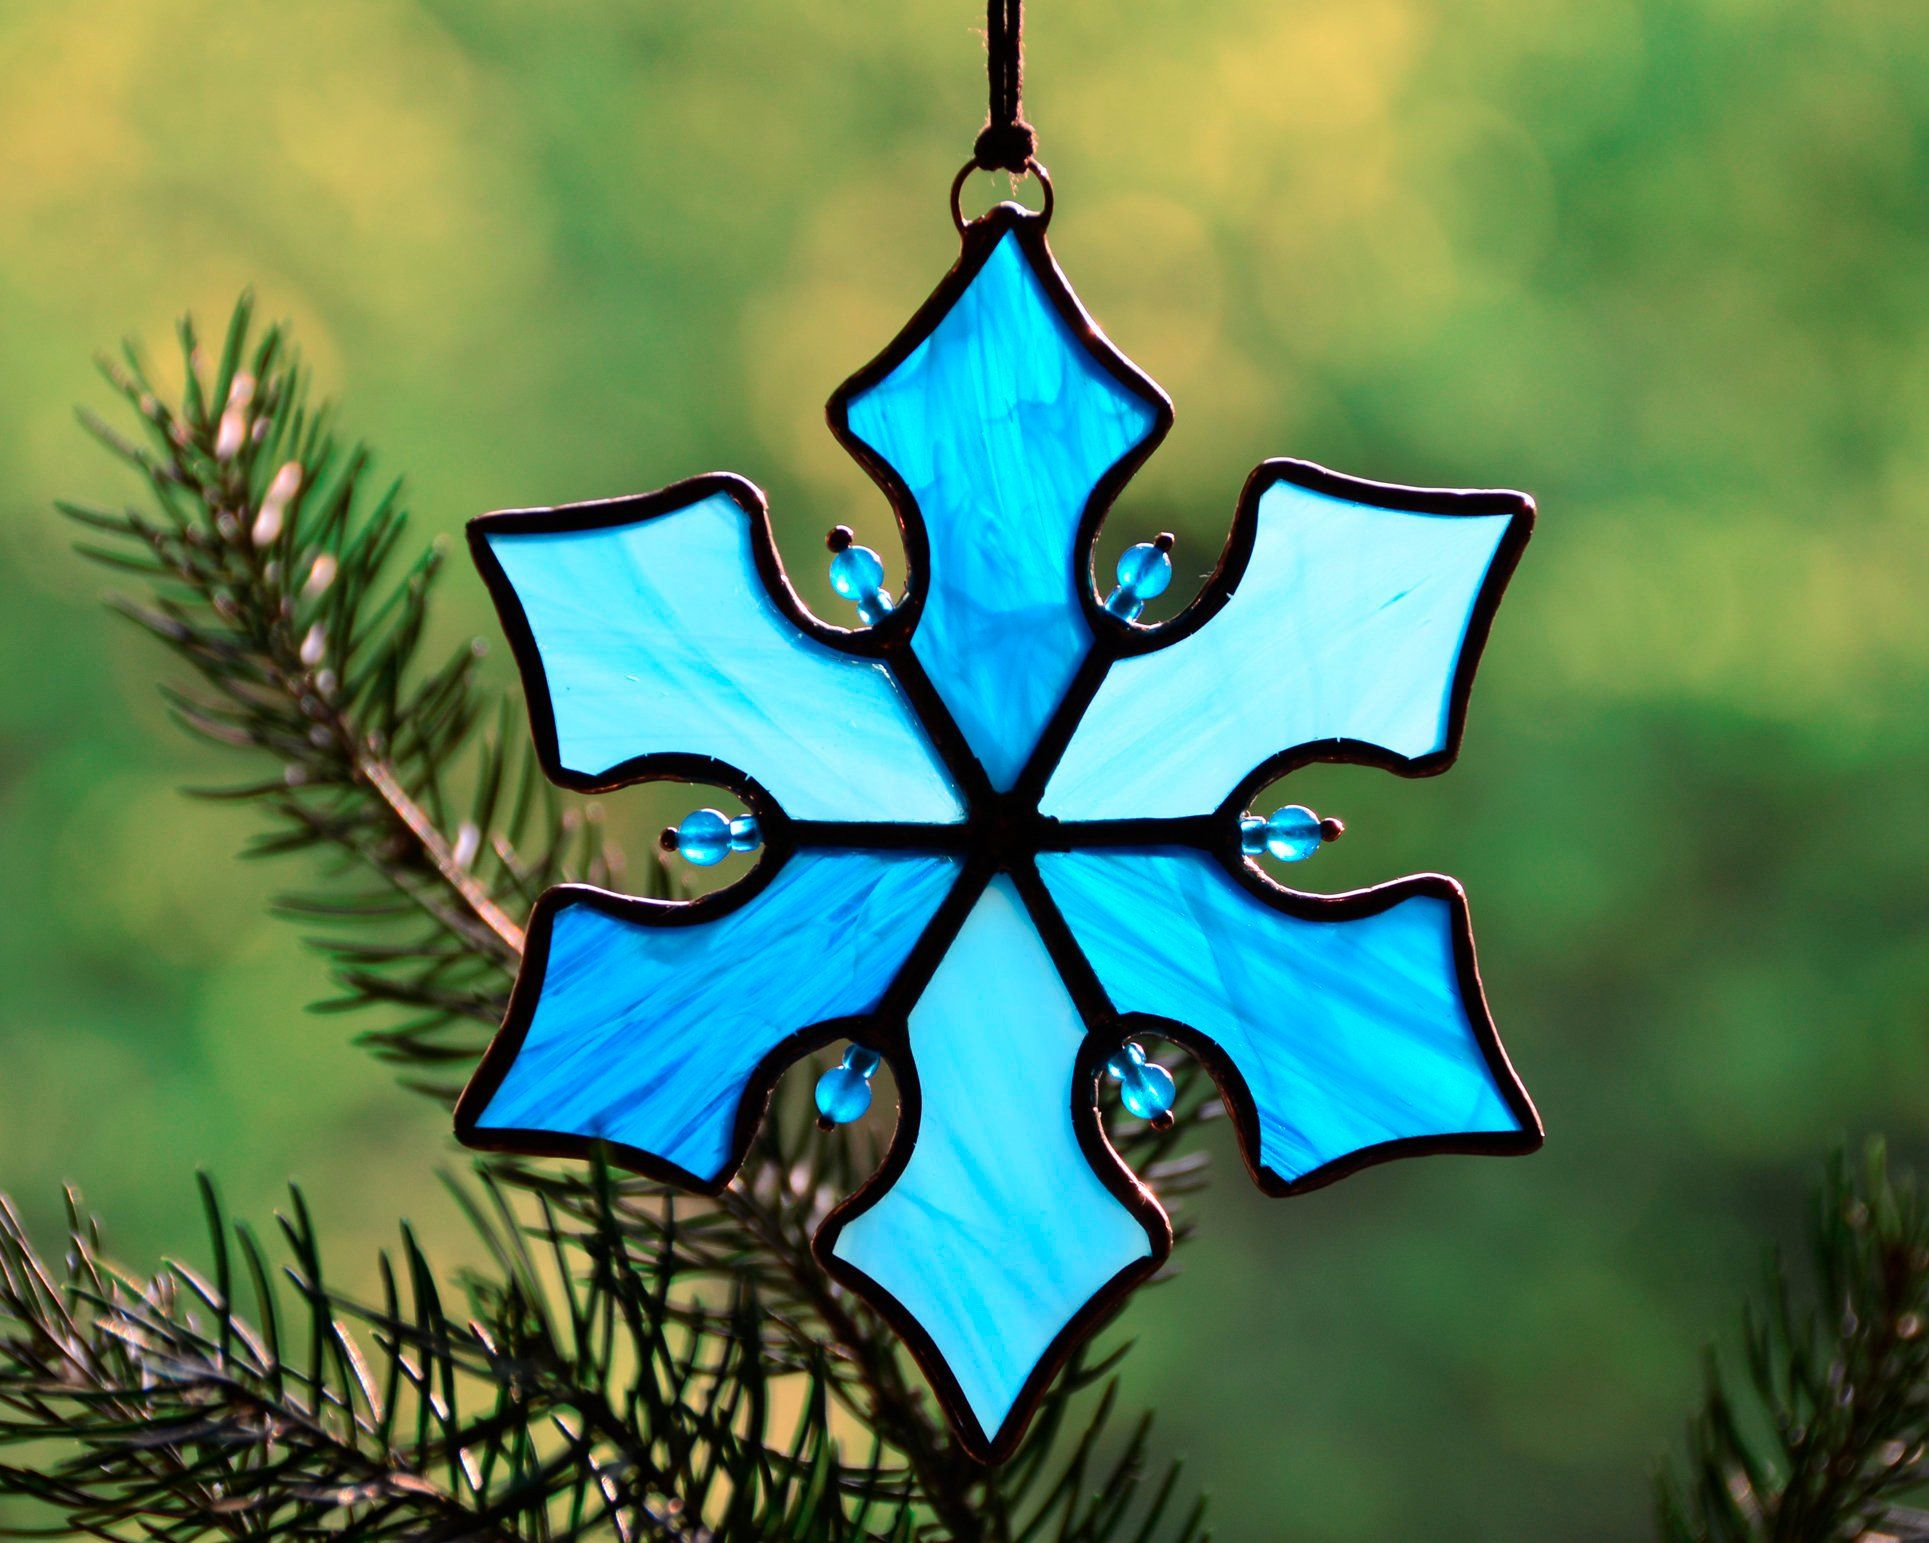 Stained Glass Suncatcher Snowflake Christmas Ornaments Etsy Stained Glass Christmas Stained Glass Ornaments Stained Glass Gifts